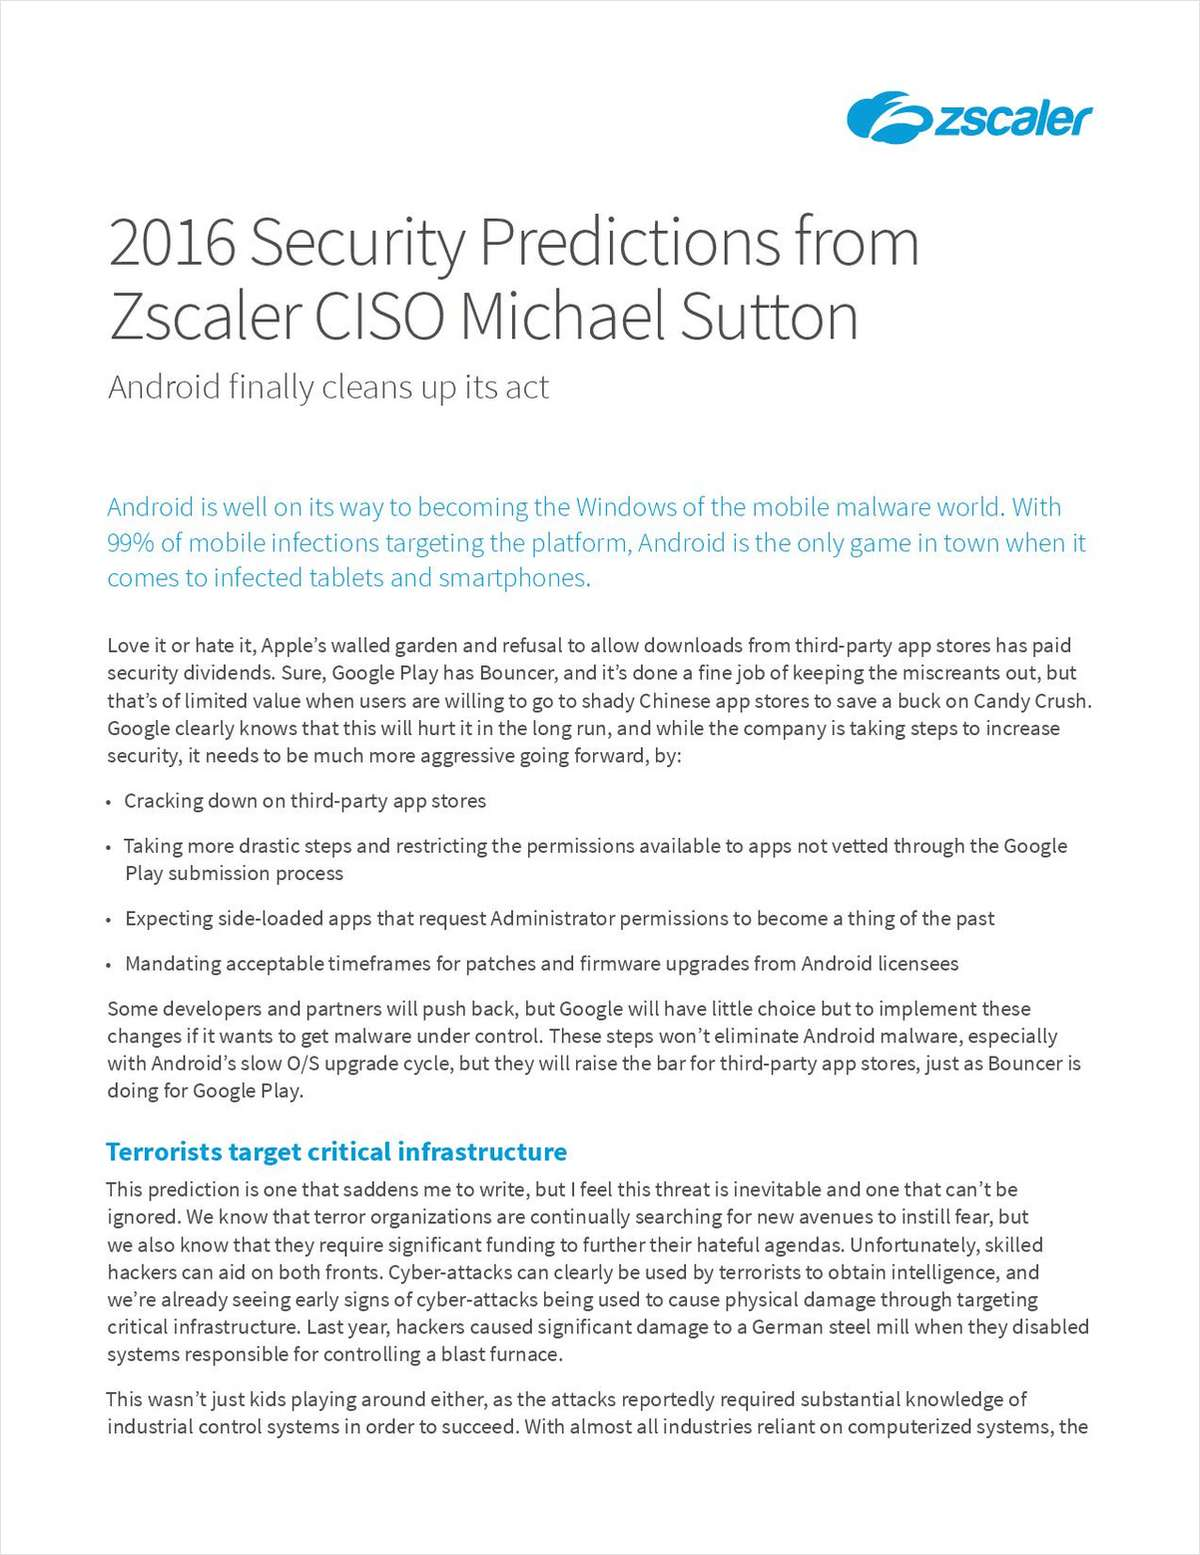 Top Security Predictions for 2016